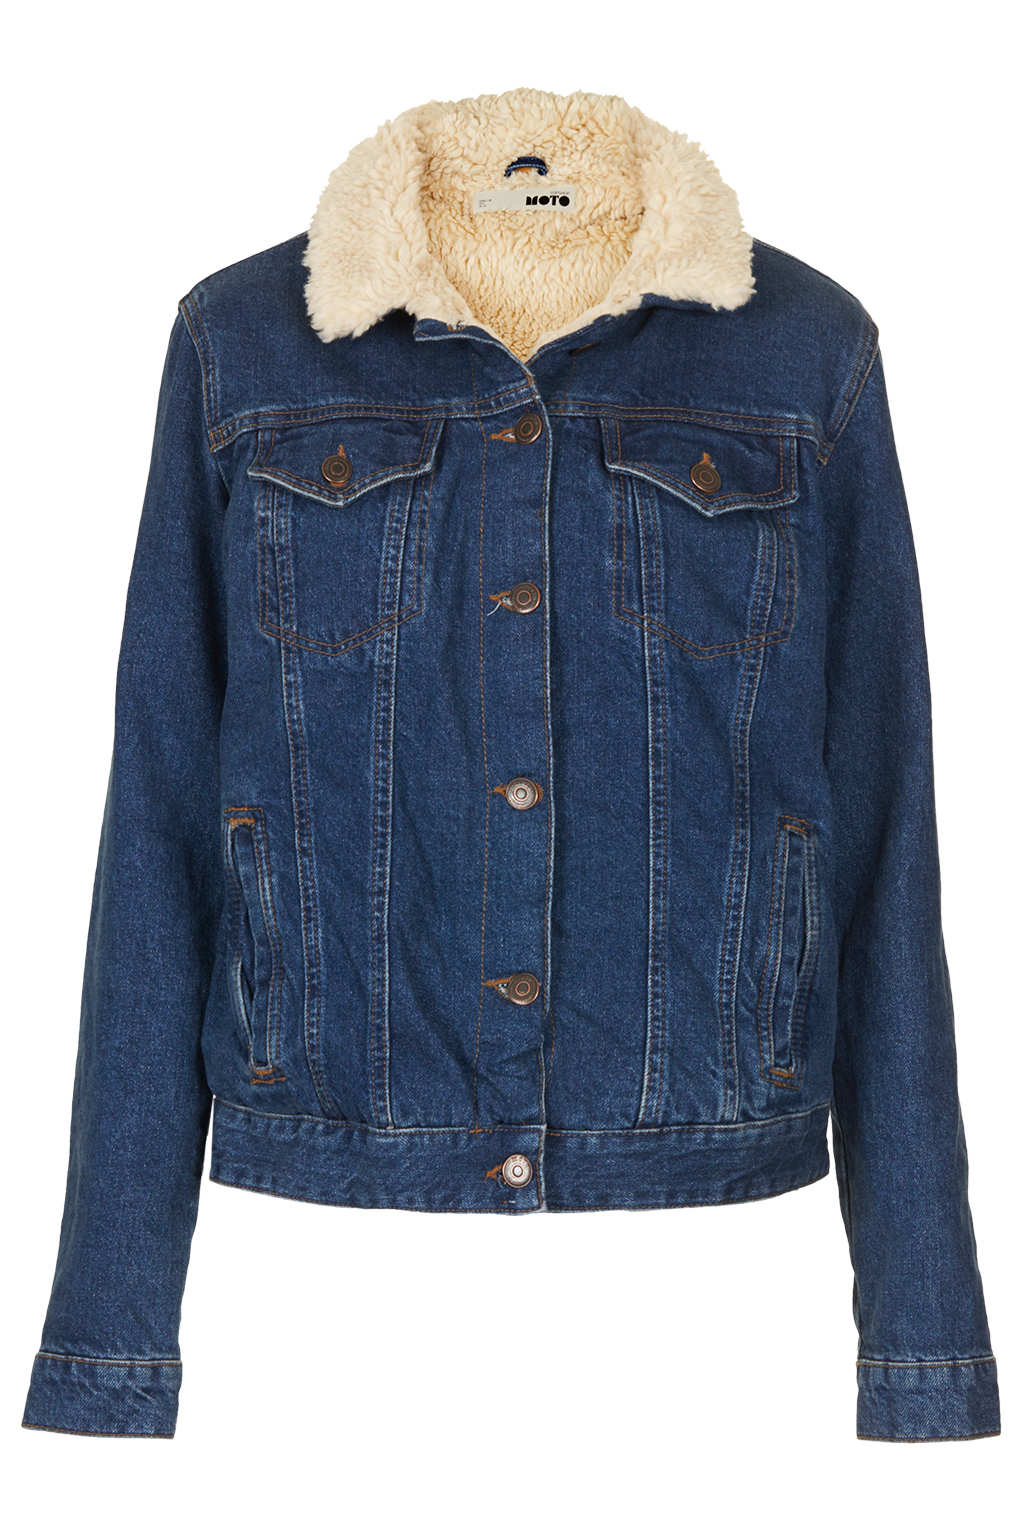 Shop Target for jean jackets Coats & Jackets you will love at great low prices. Spend $35+ or use your REDcard & get free 2-day shipping on most items or same-day pick-up in store.